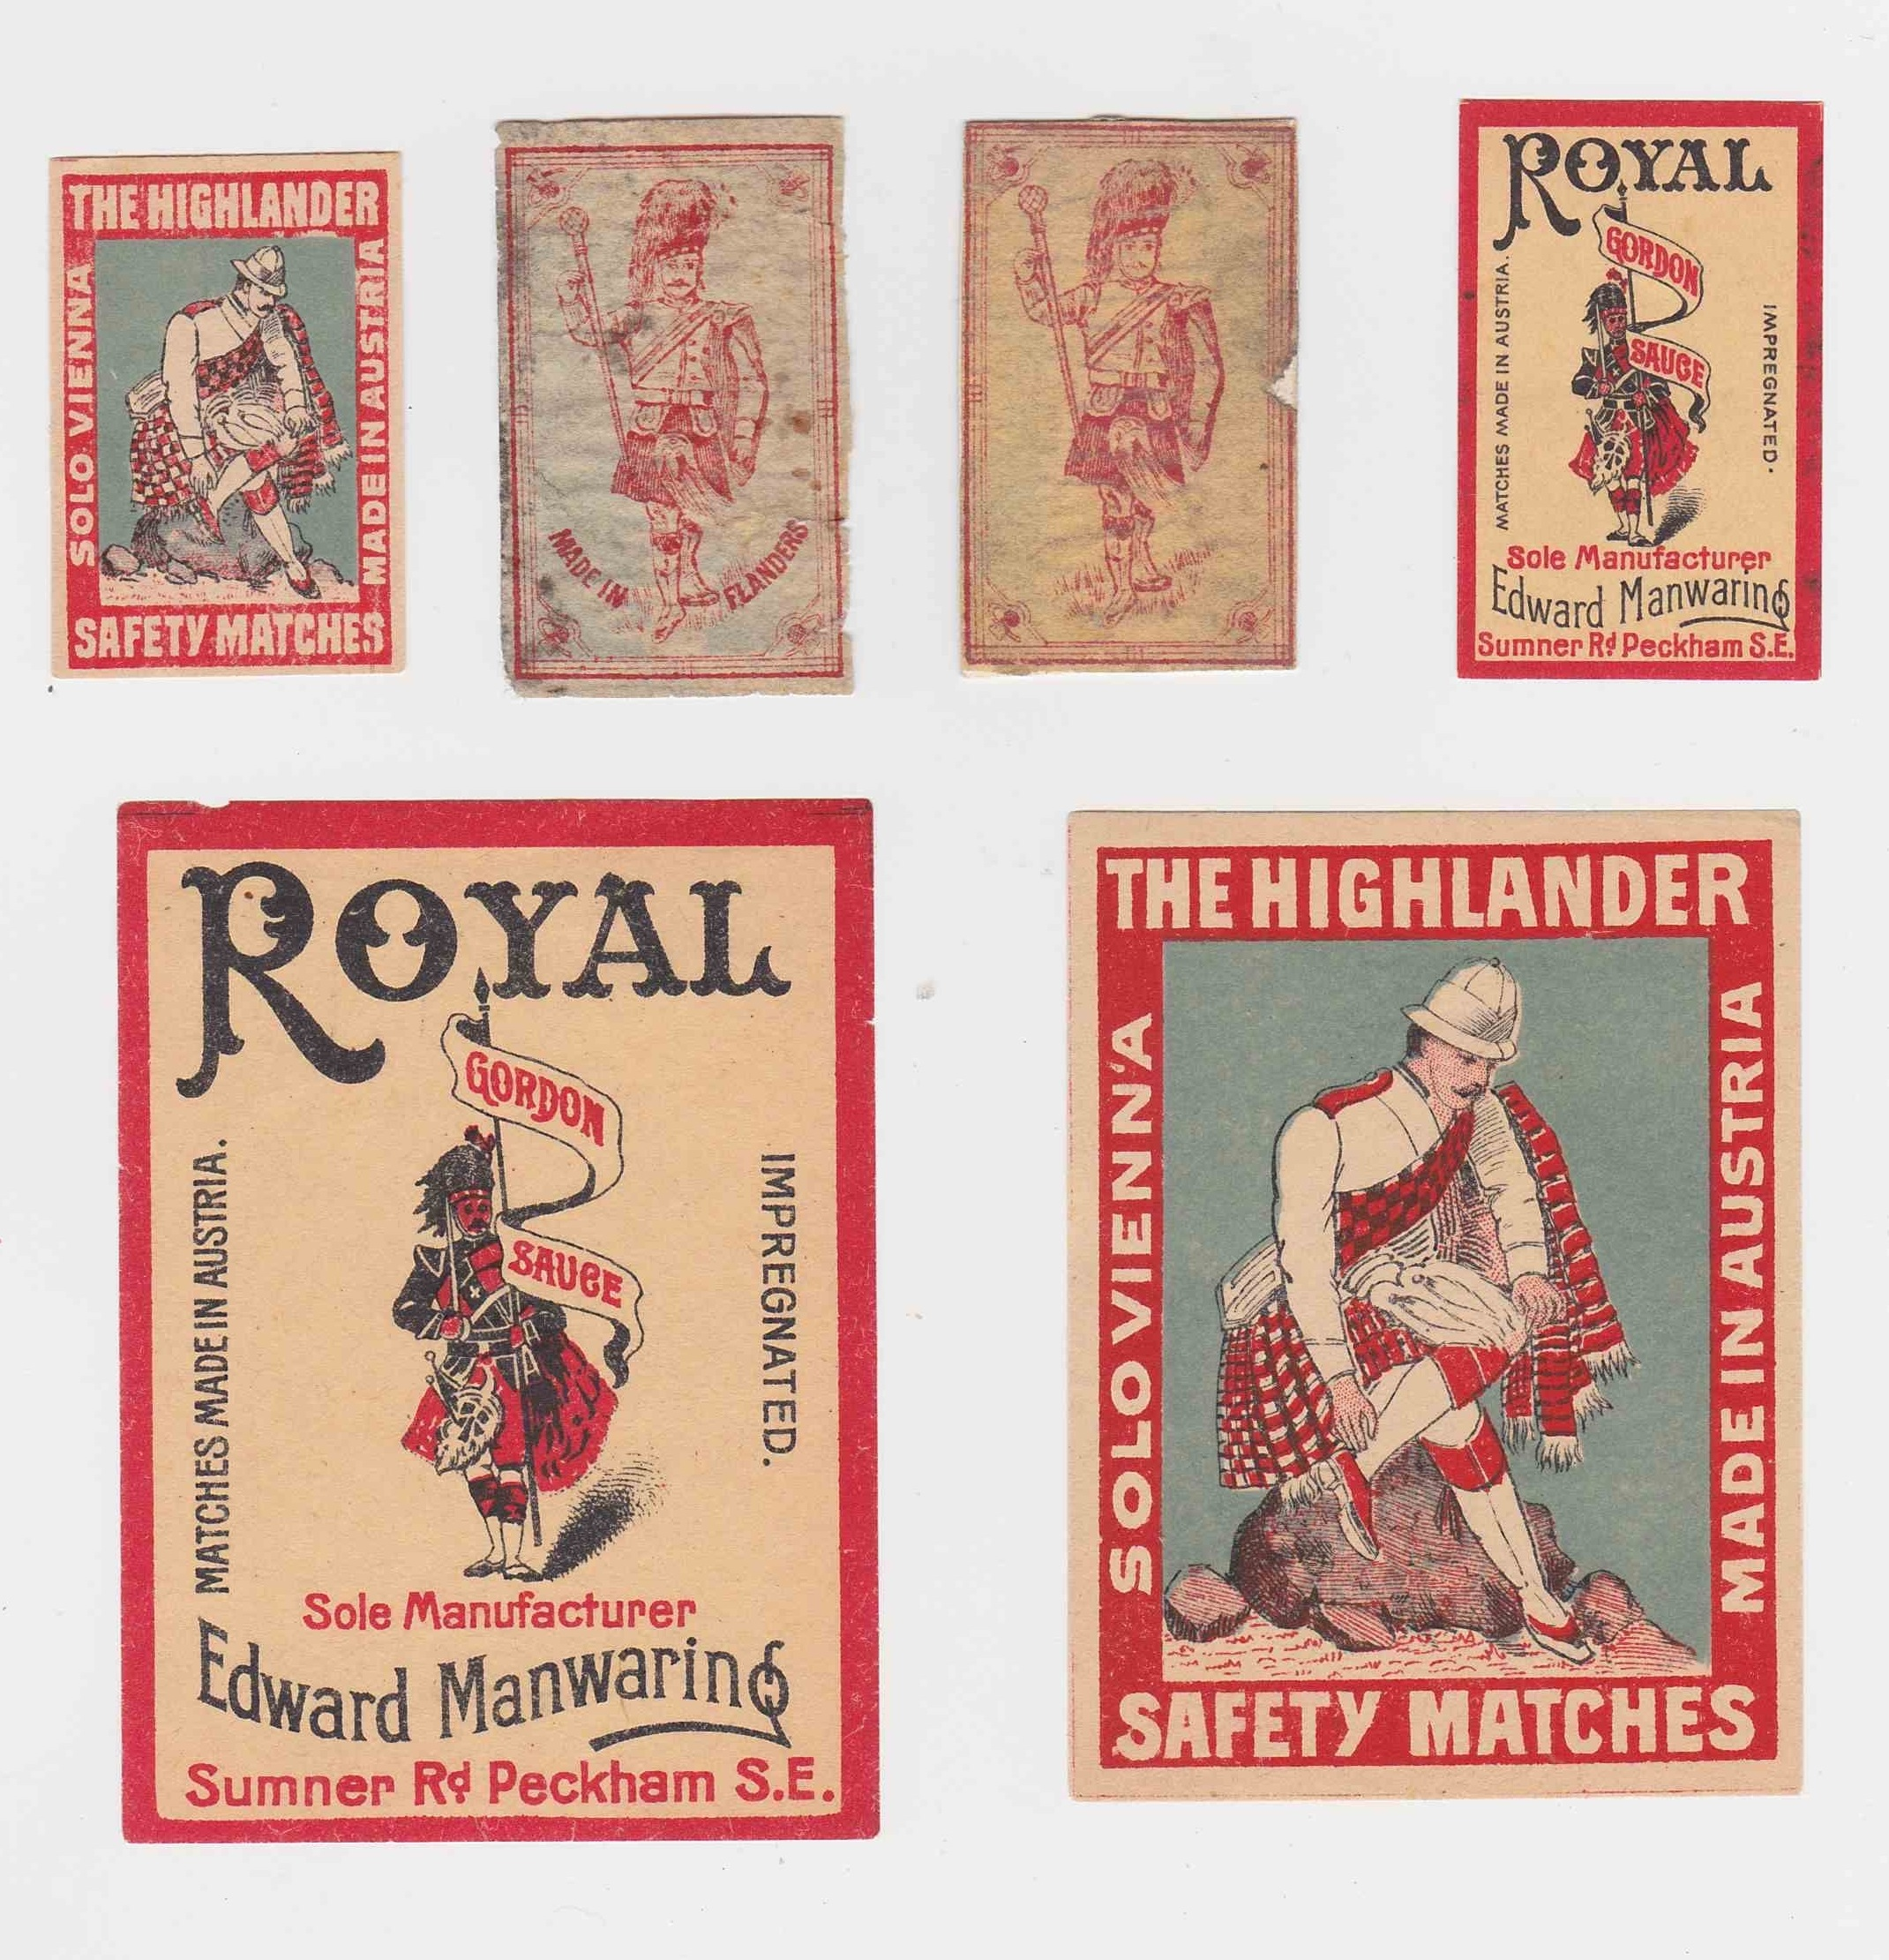 Highlander box and packet labels, Flanders, Belgium and Austria